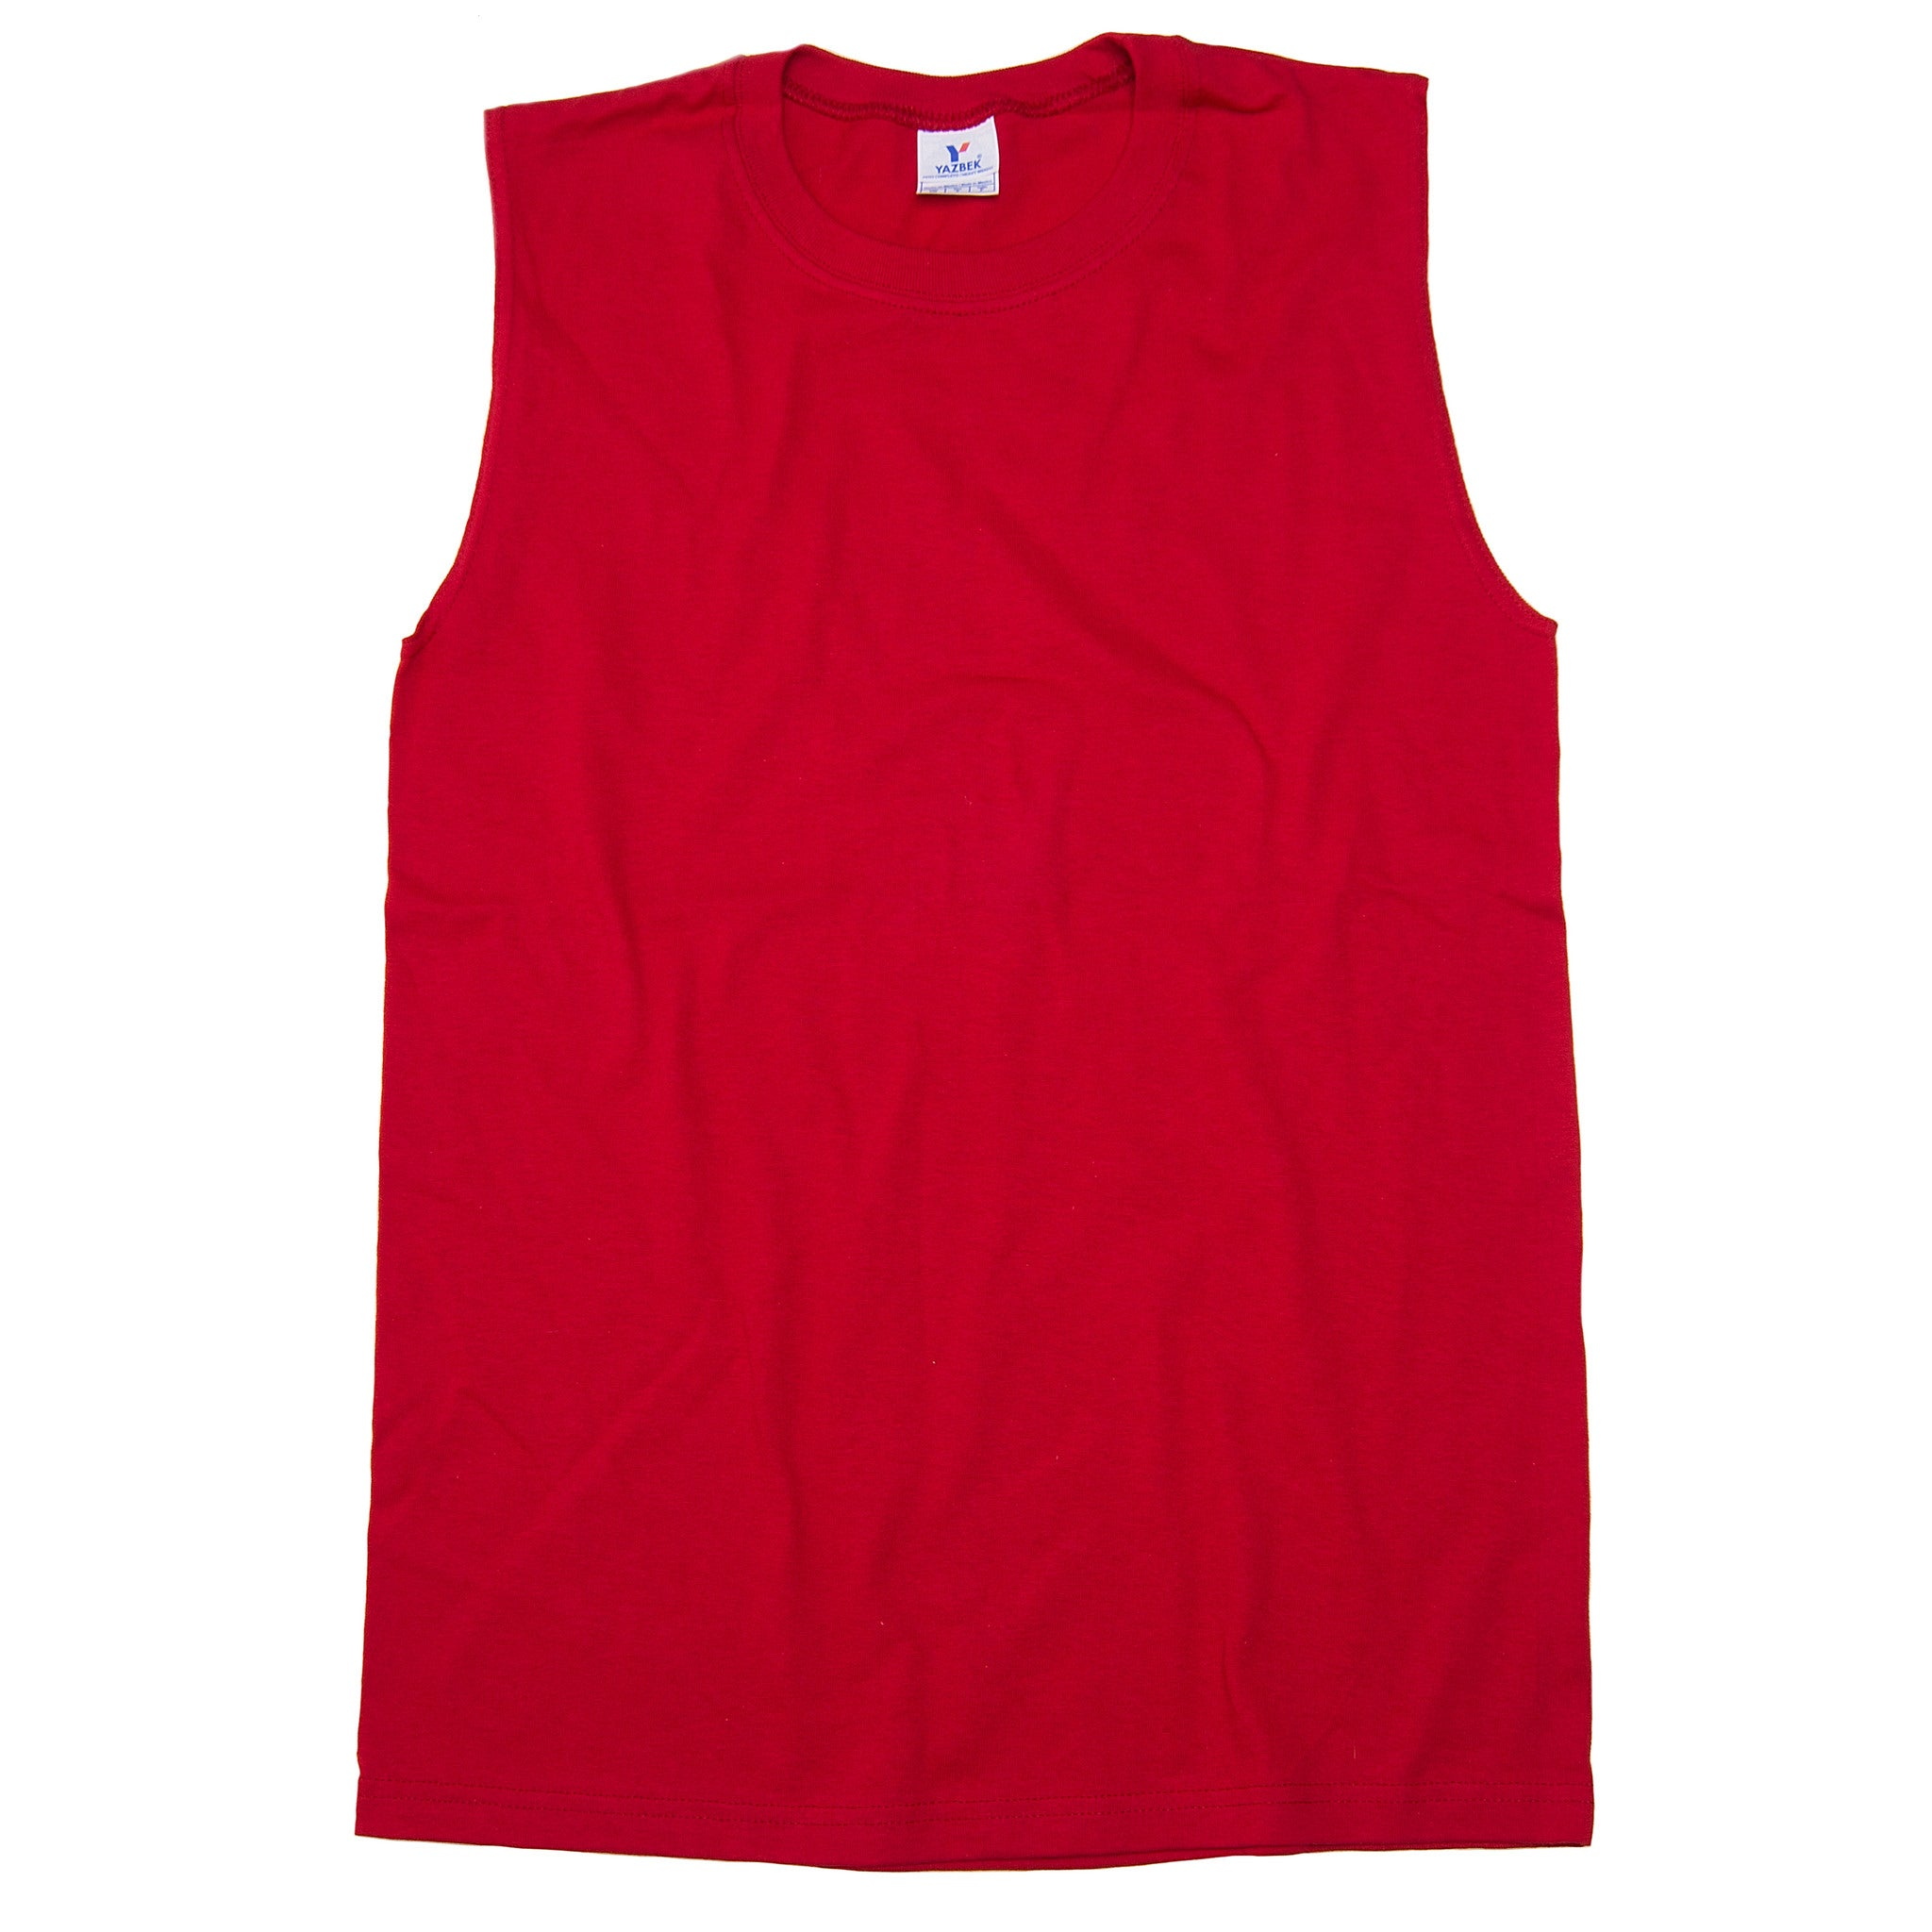 7fe5e5f09630 C0310 100% Cotton Heavy Weight Unisex Crew Neck Sleeveless Shirt